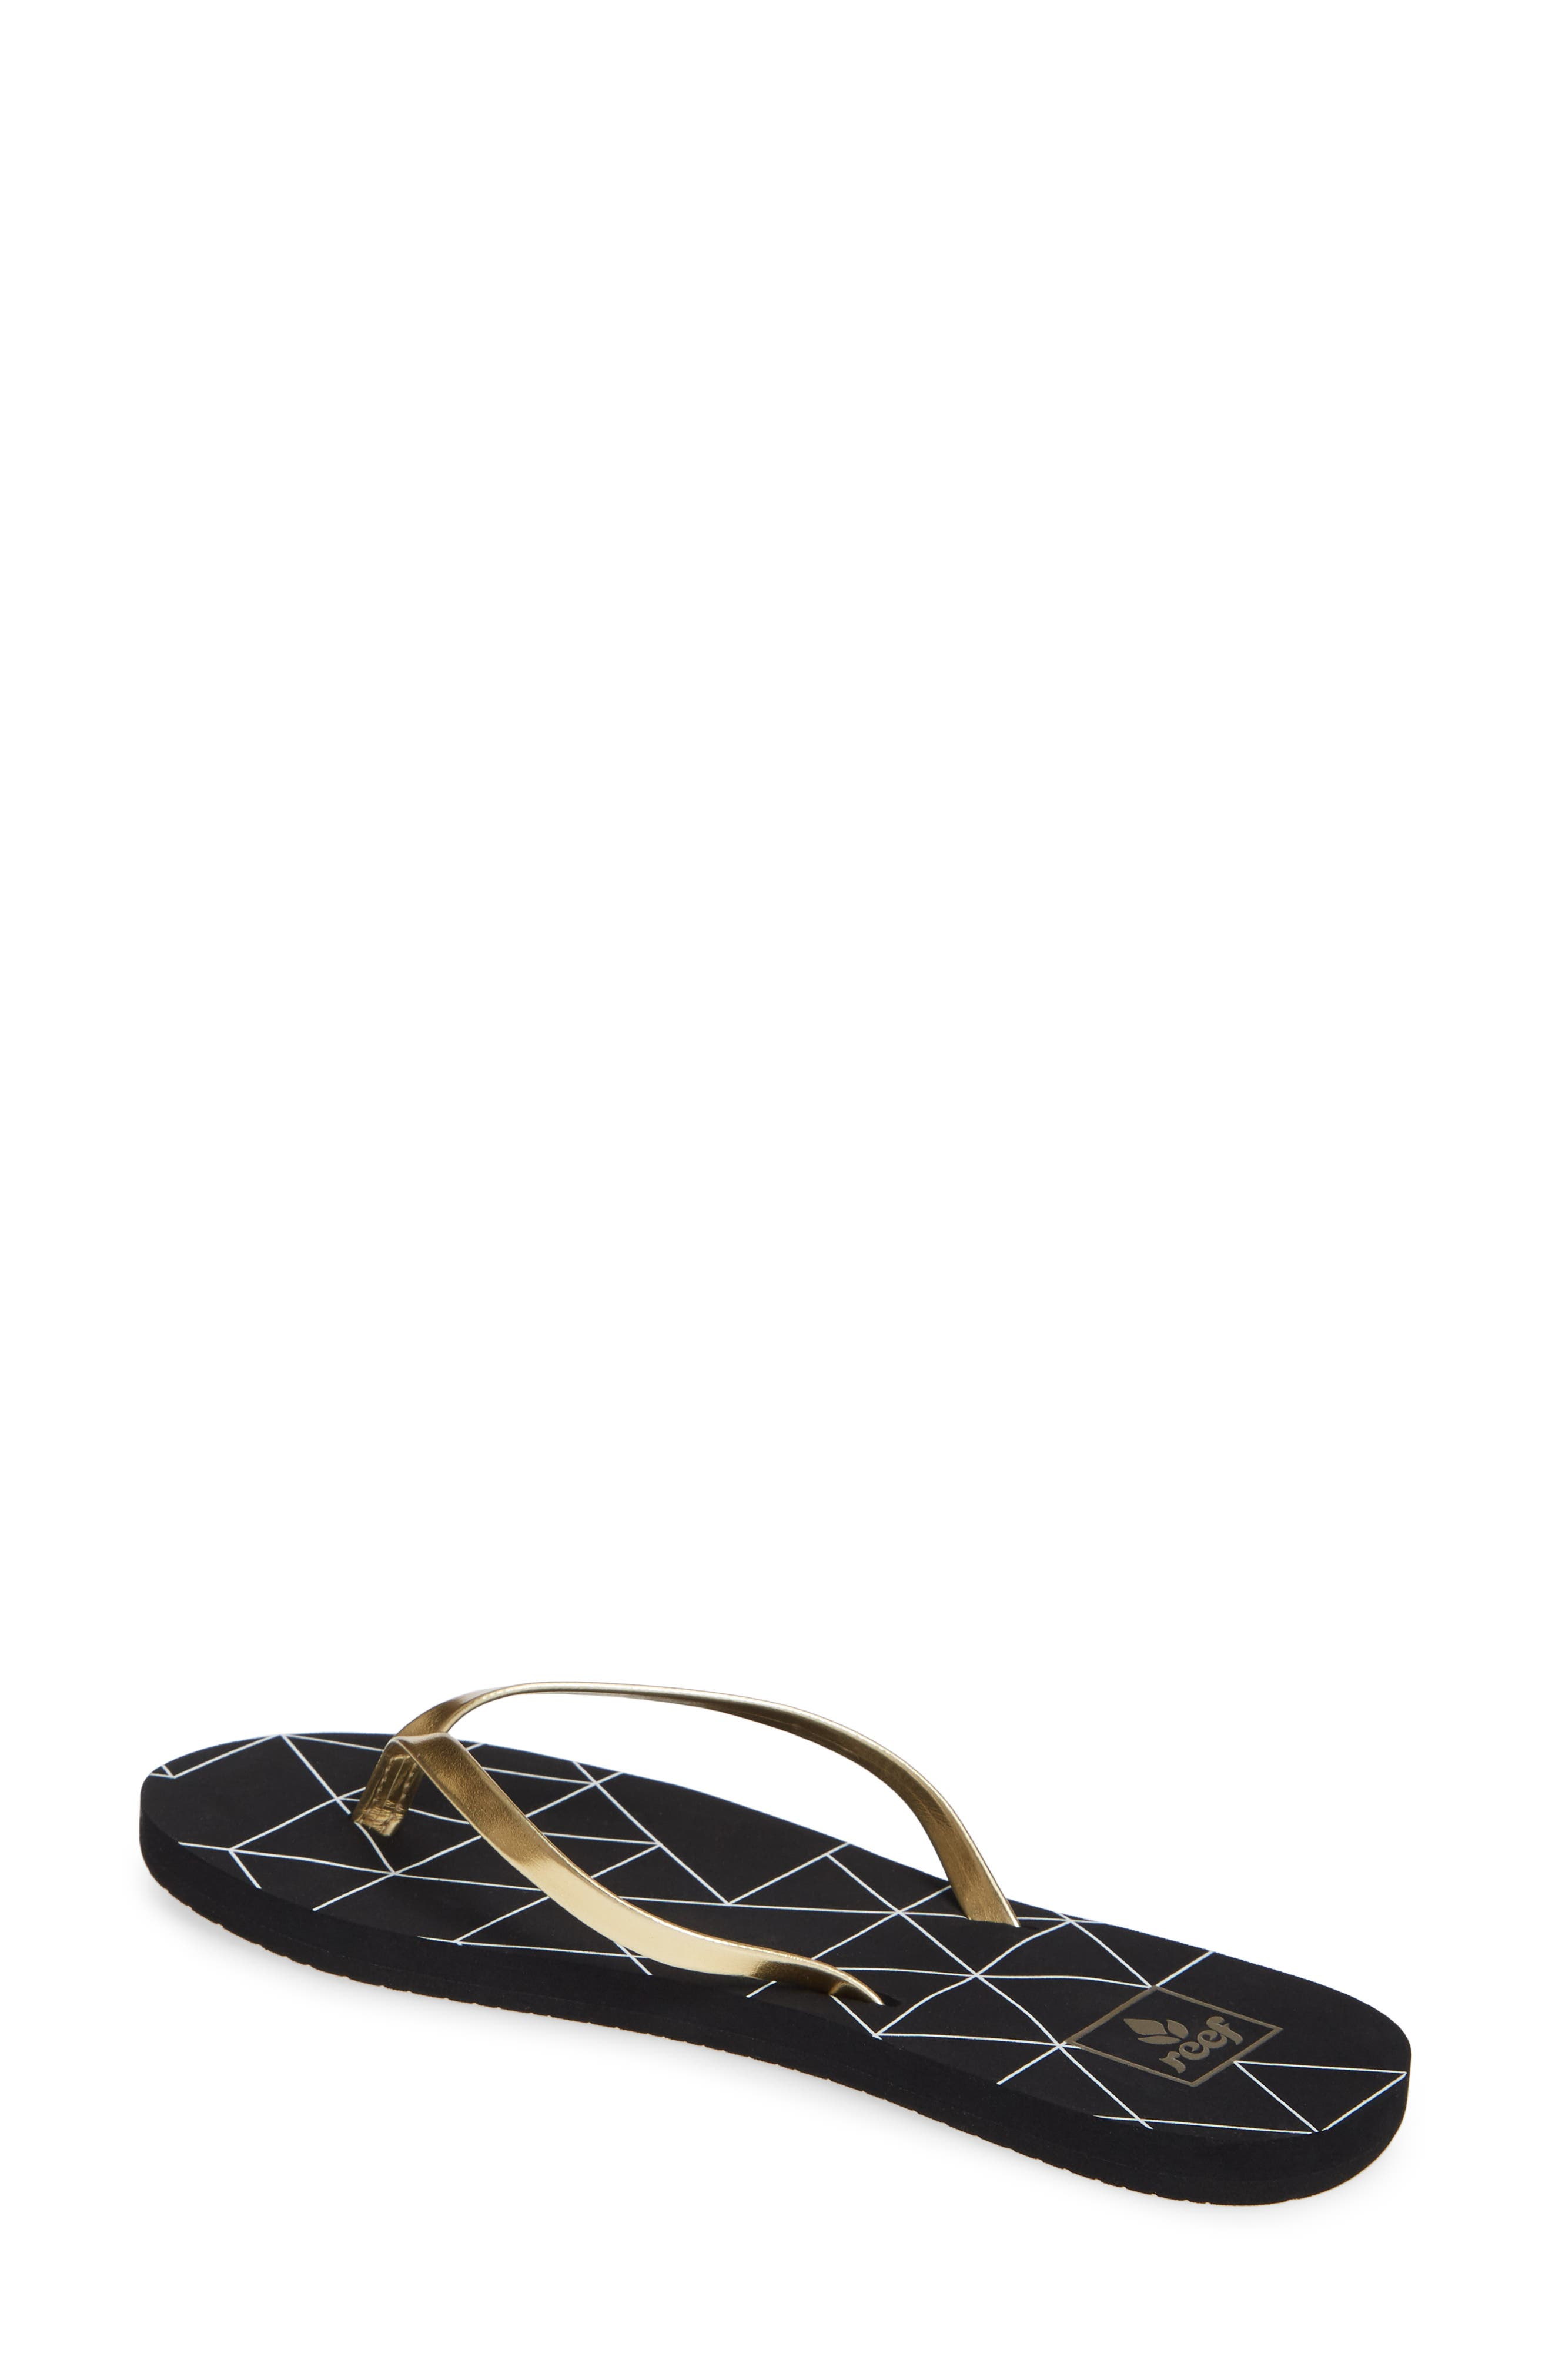 REEF, Bliss-Full Flip Flop, Alternate thumbnail 2, color, GOLD PYRAMIDS